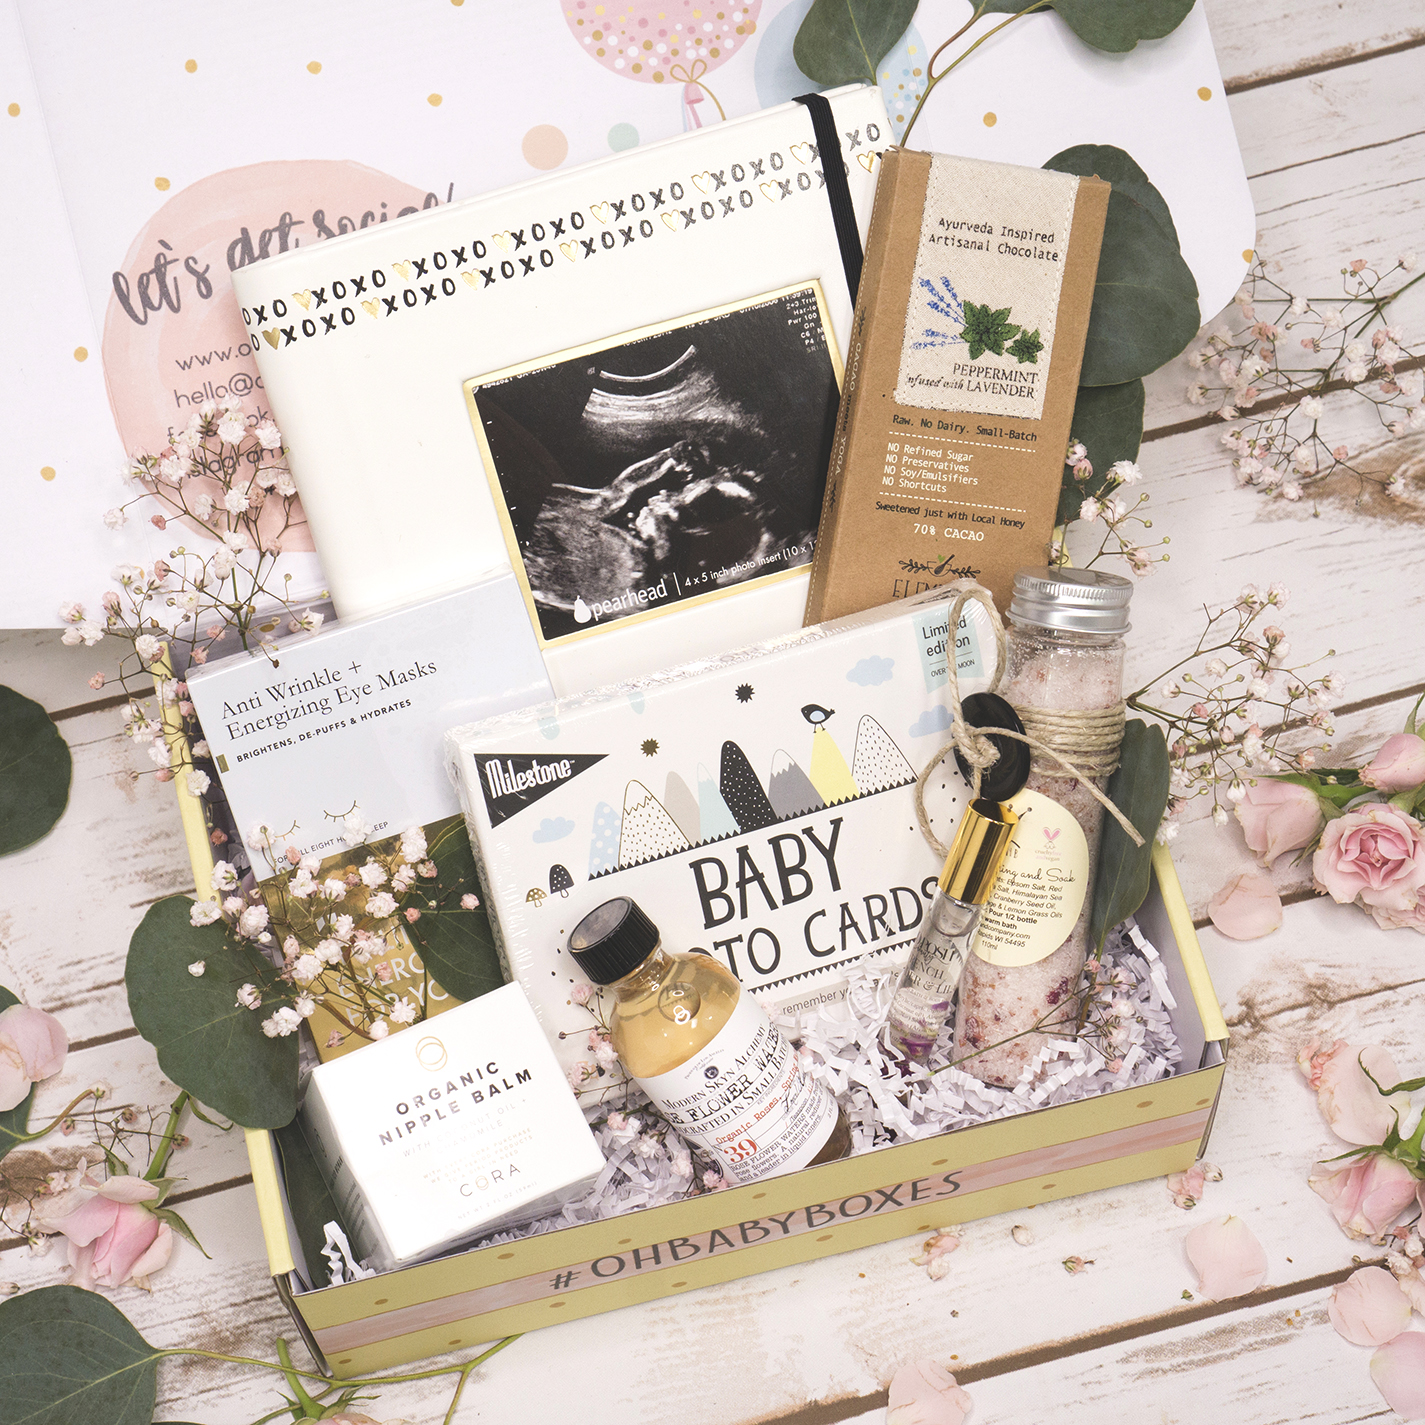 Oh Baby Boxes is a pregnancy and newborn subscription.